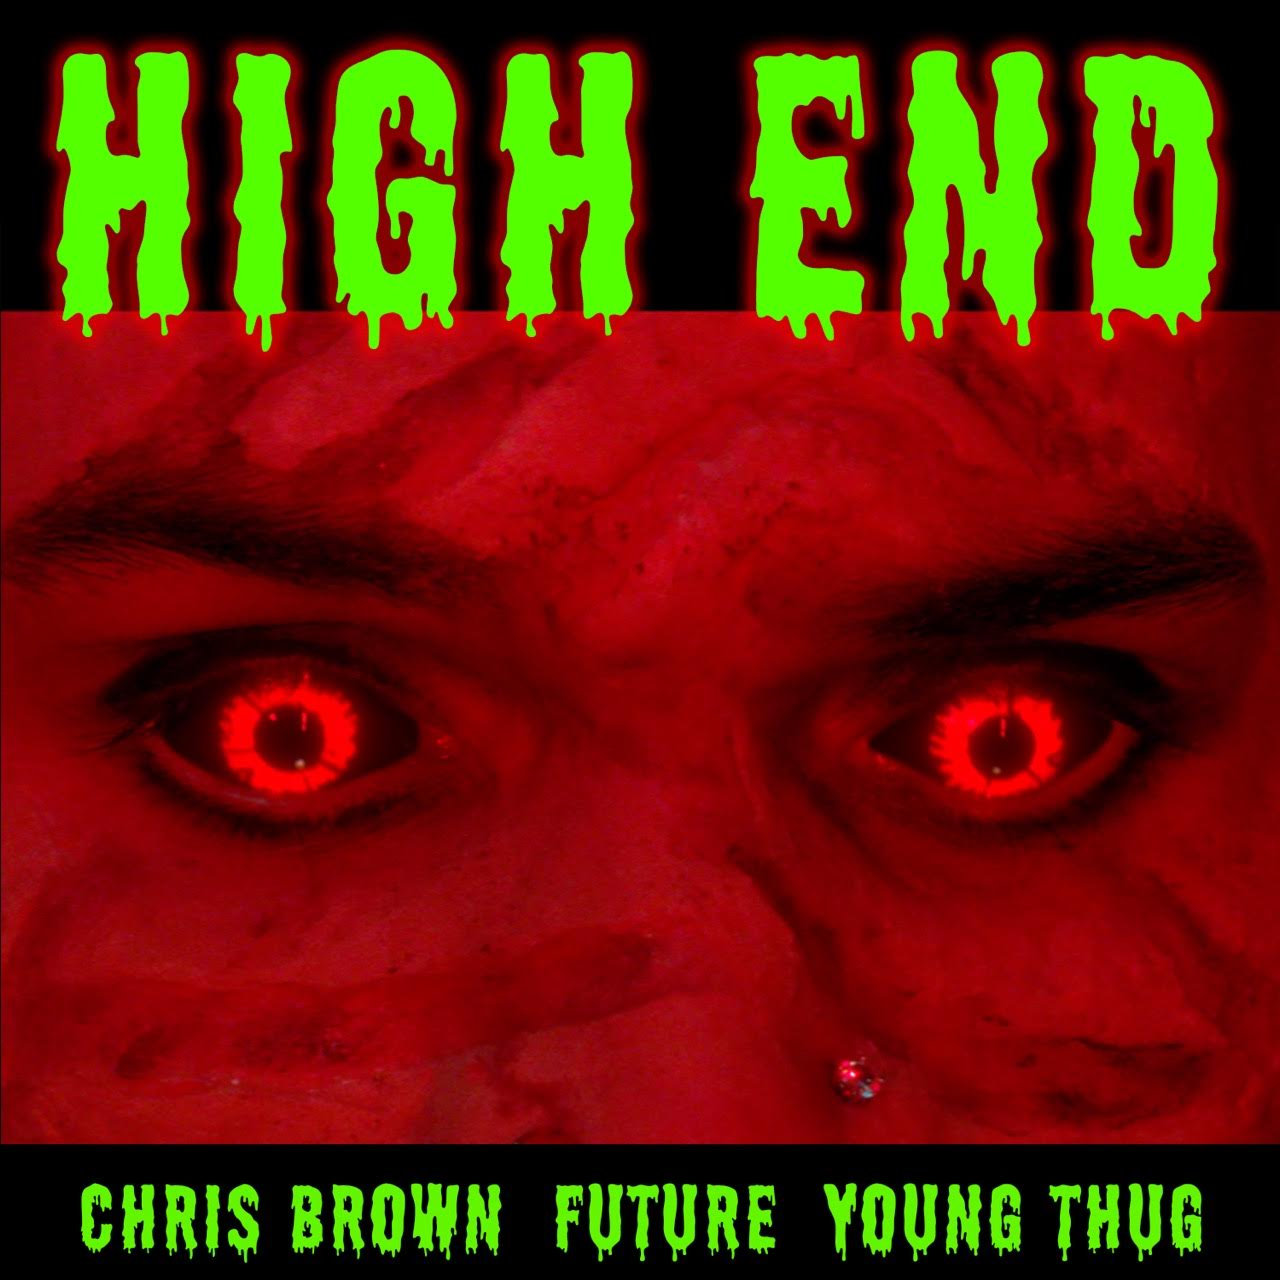 @chrisbrown @youngthug #HighEnd https://t.co/S97qlNdwKZ